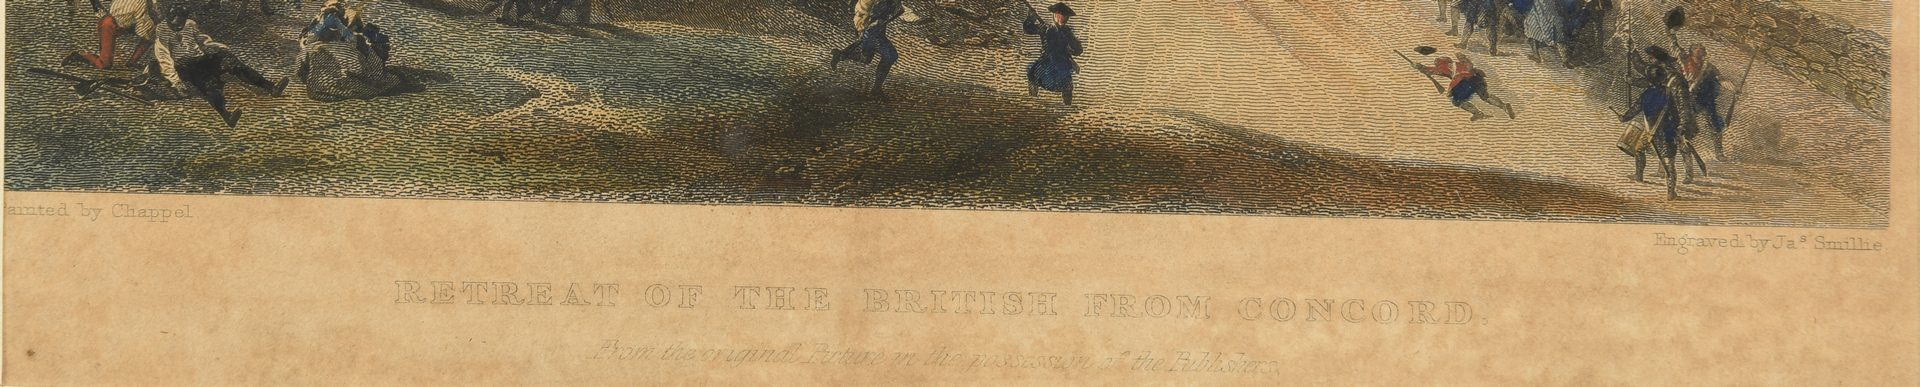 Lot 559: 4 19th Century Engravings, incl. Rev. War Related